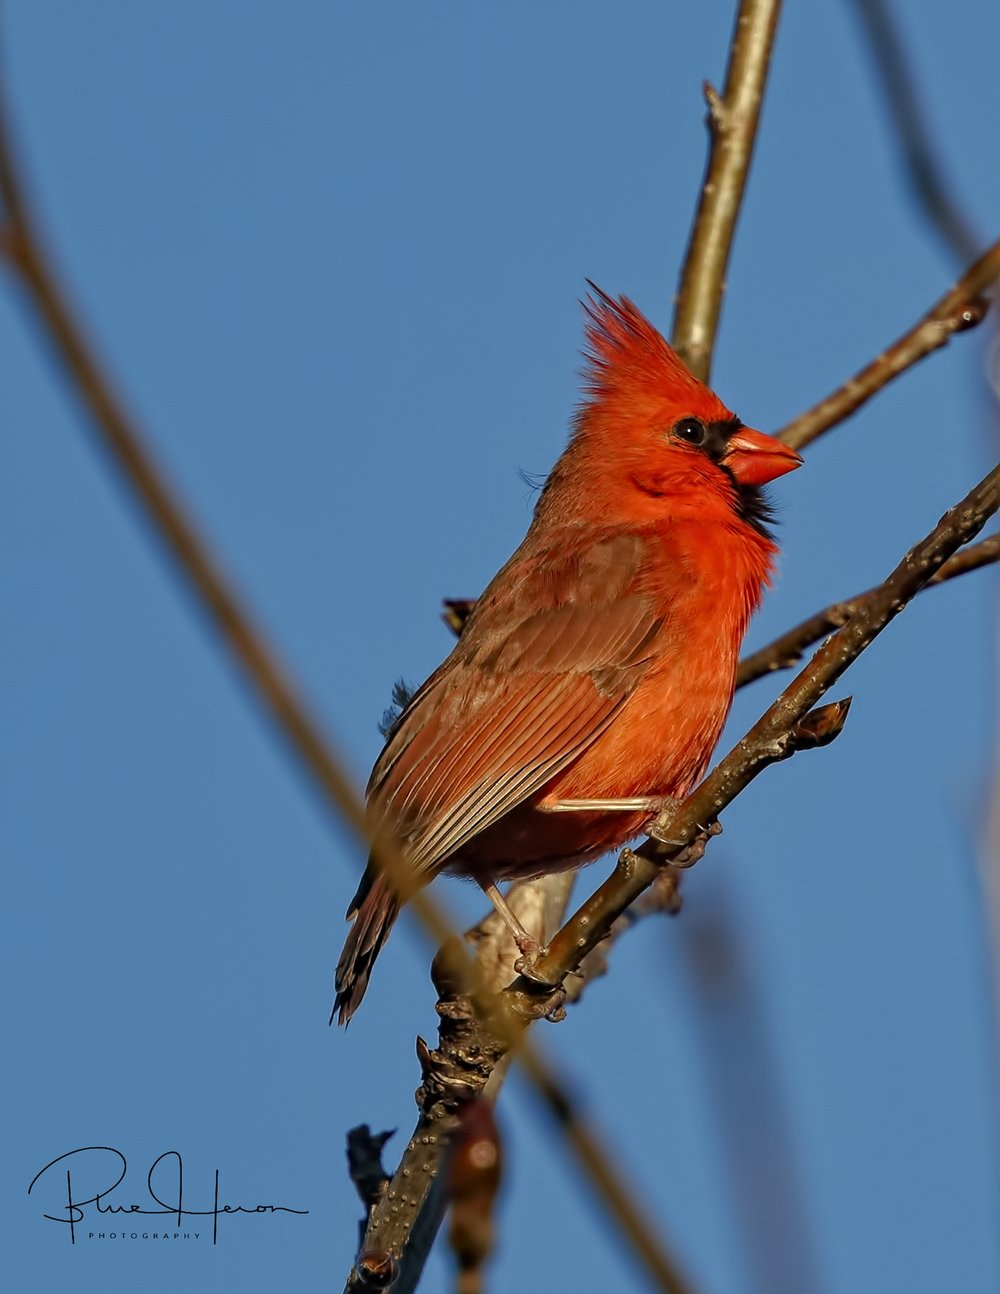 Darn twig ruined my picture of this beautiful Cardinal male